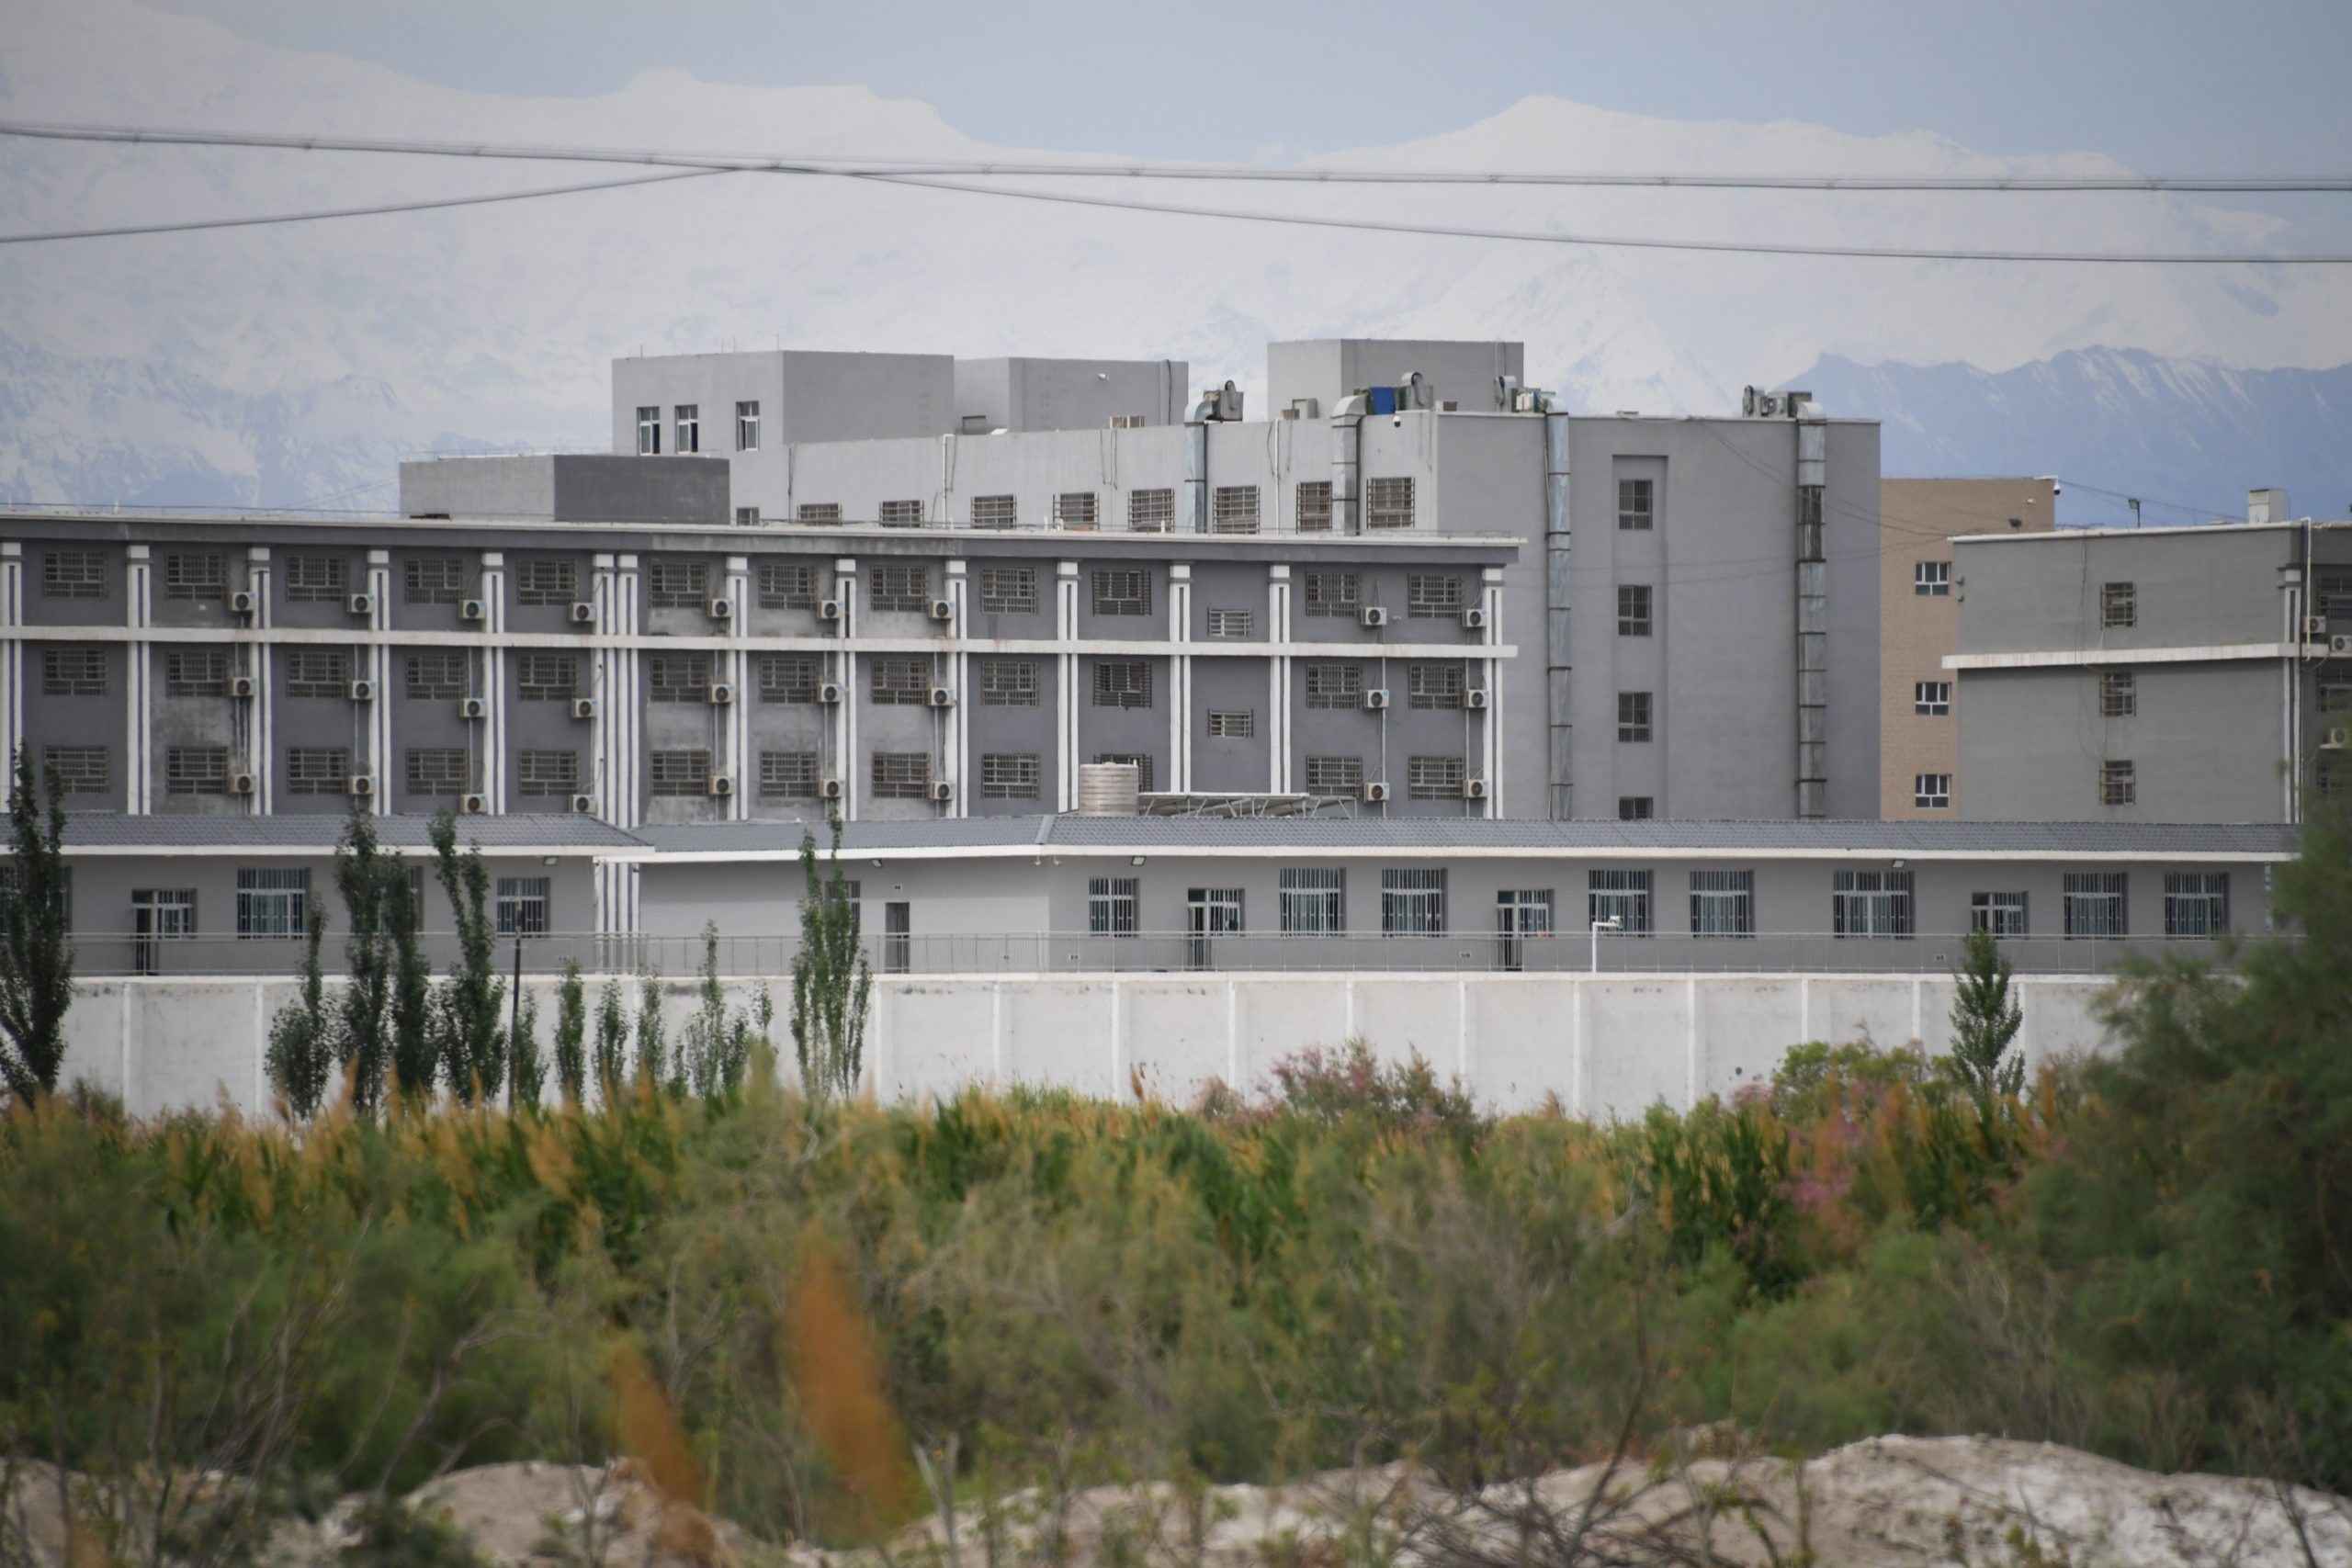 A facility believed to be a re-education camp where mostly Muslim ethnic minorities are detained is pictured in China's northwestern Xinjiang region in 2019. (Greg Baker/AFP via Getty Images)